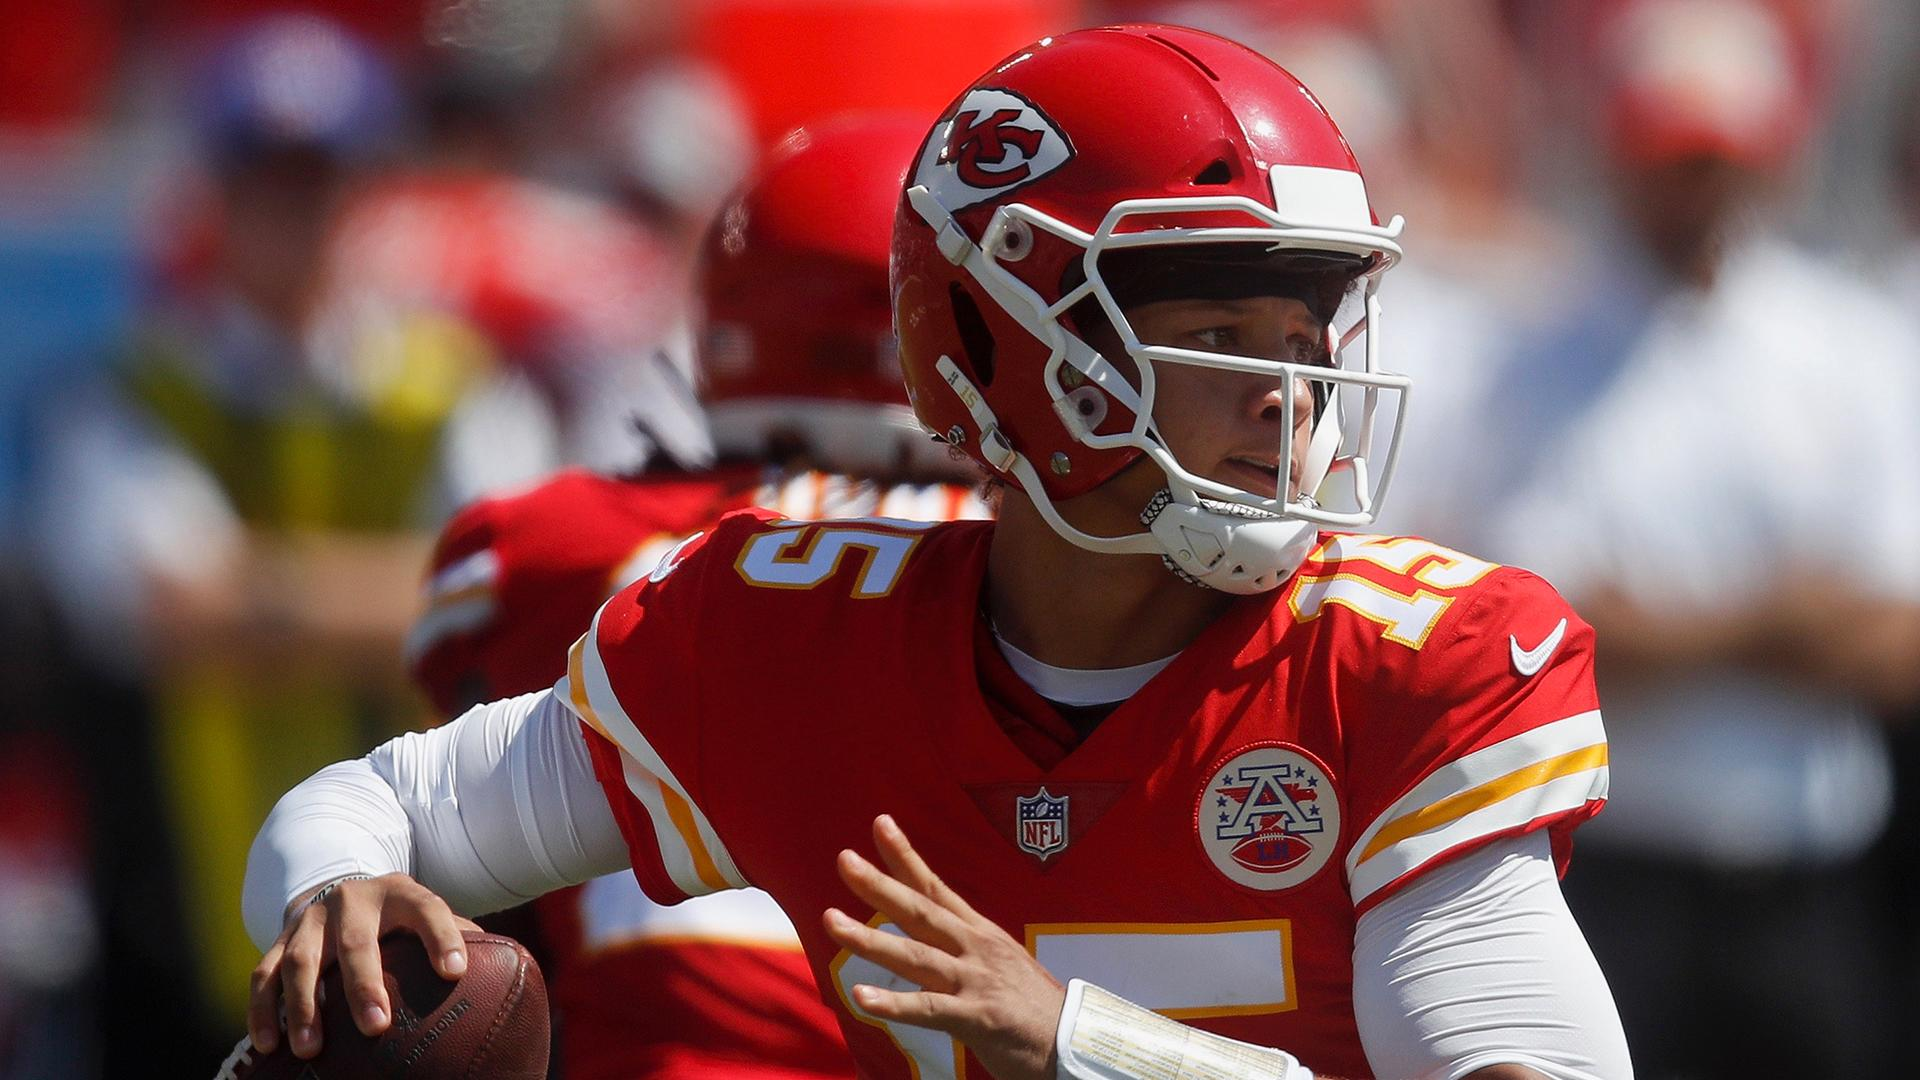 Week 13 Fantasy QB Ranks: Mahomes should crush Oakland